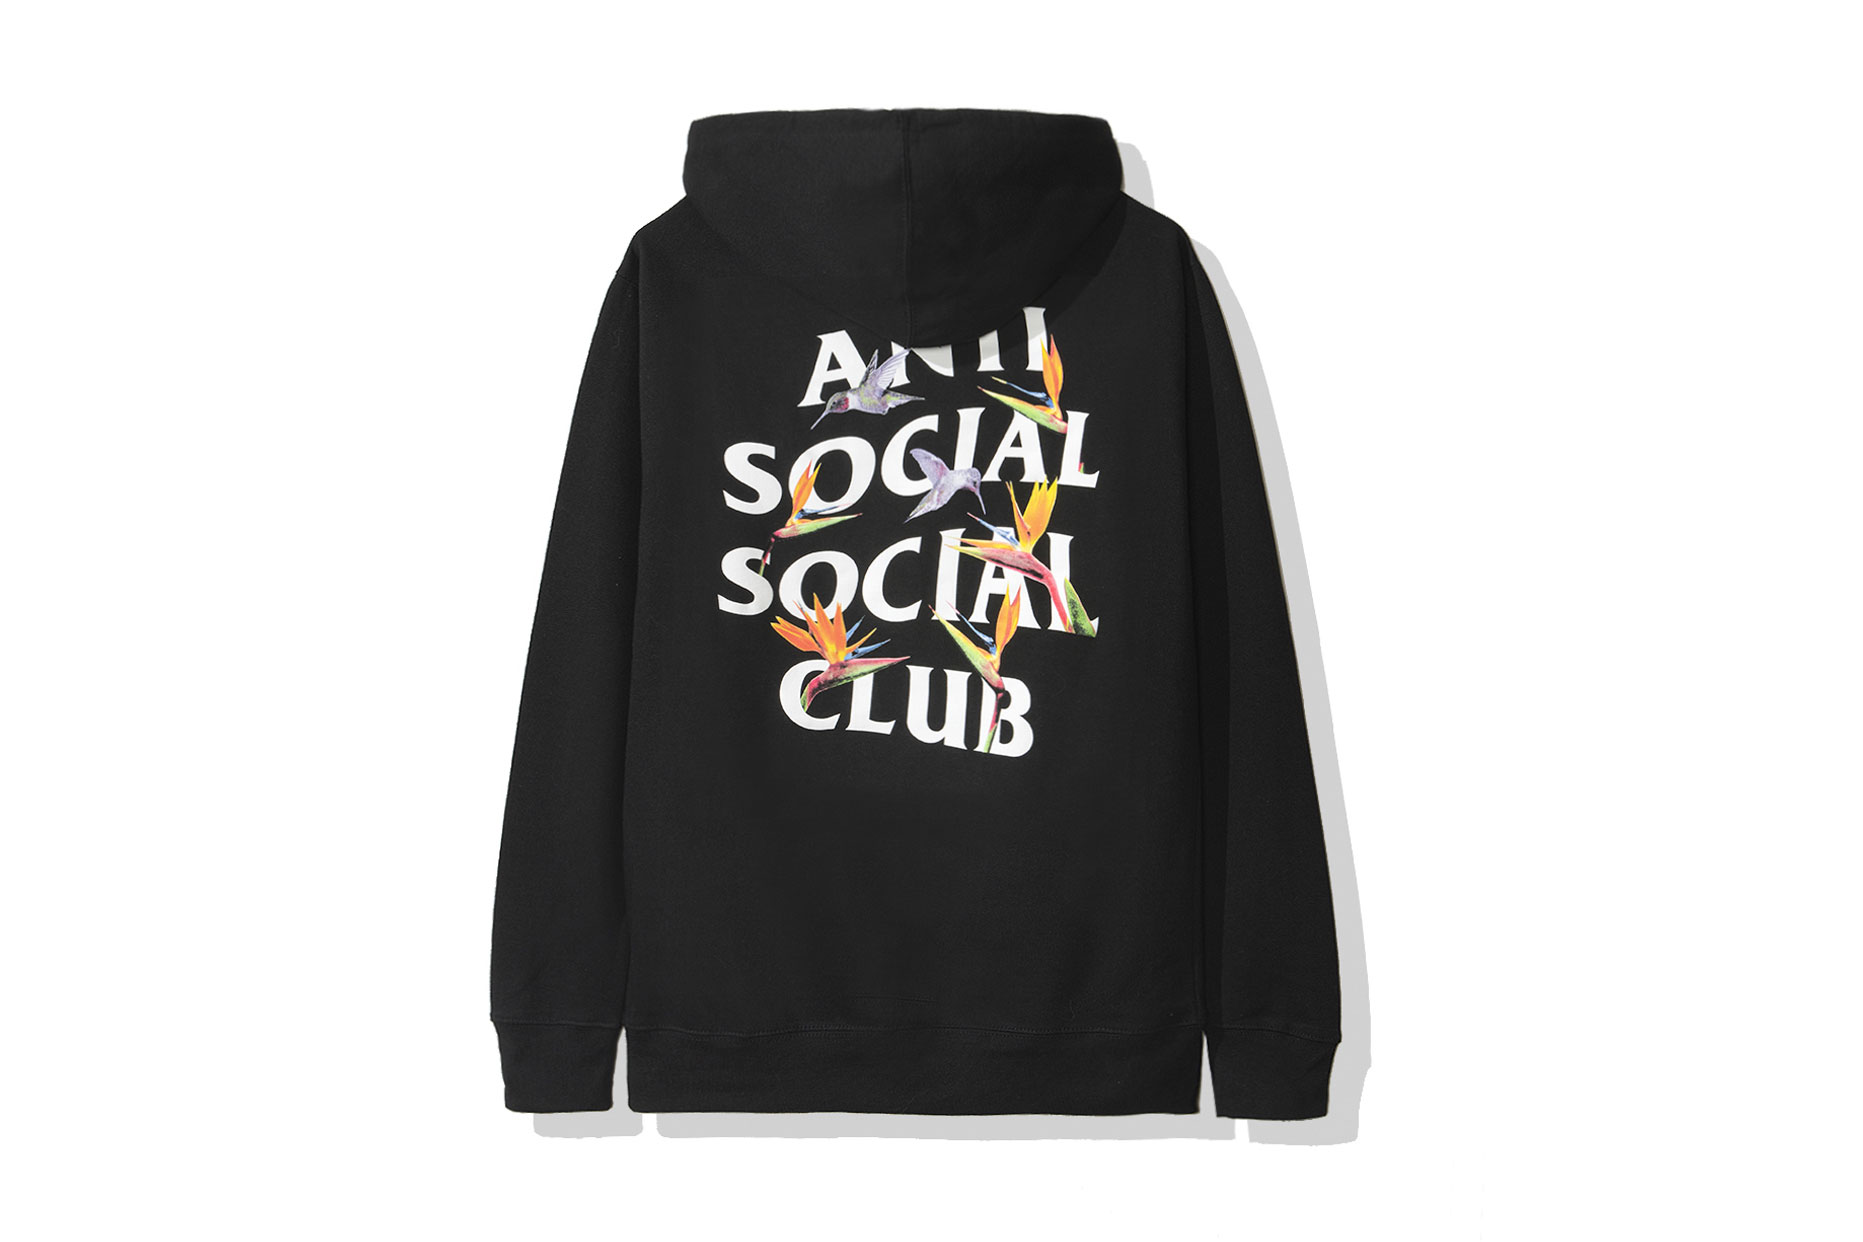 anti-social-social-club-fall-winter-2019-still-stressed-collection-playboy-honda-undefeated-72.jpg